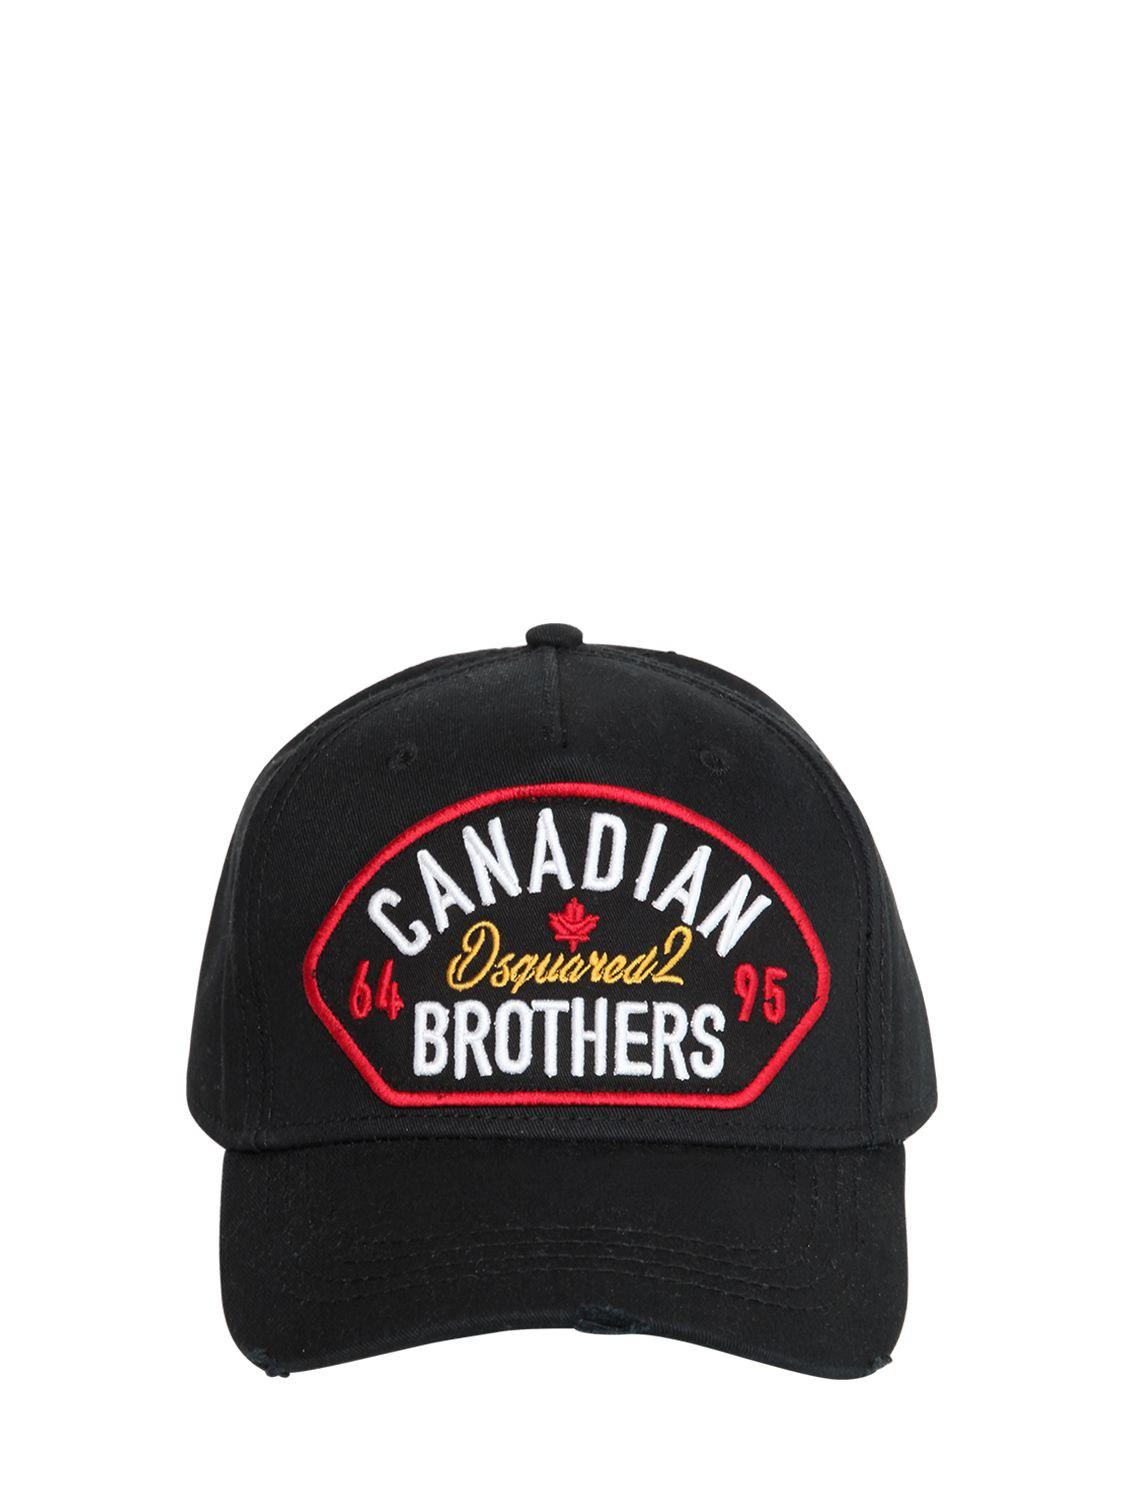 Lyst - DSquared² Canadian Brothers Patch Baseball Hat in Black for Men c6a9c0ff5060